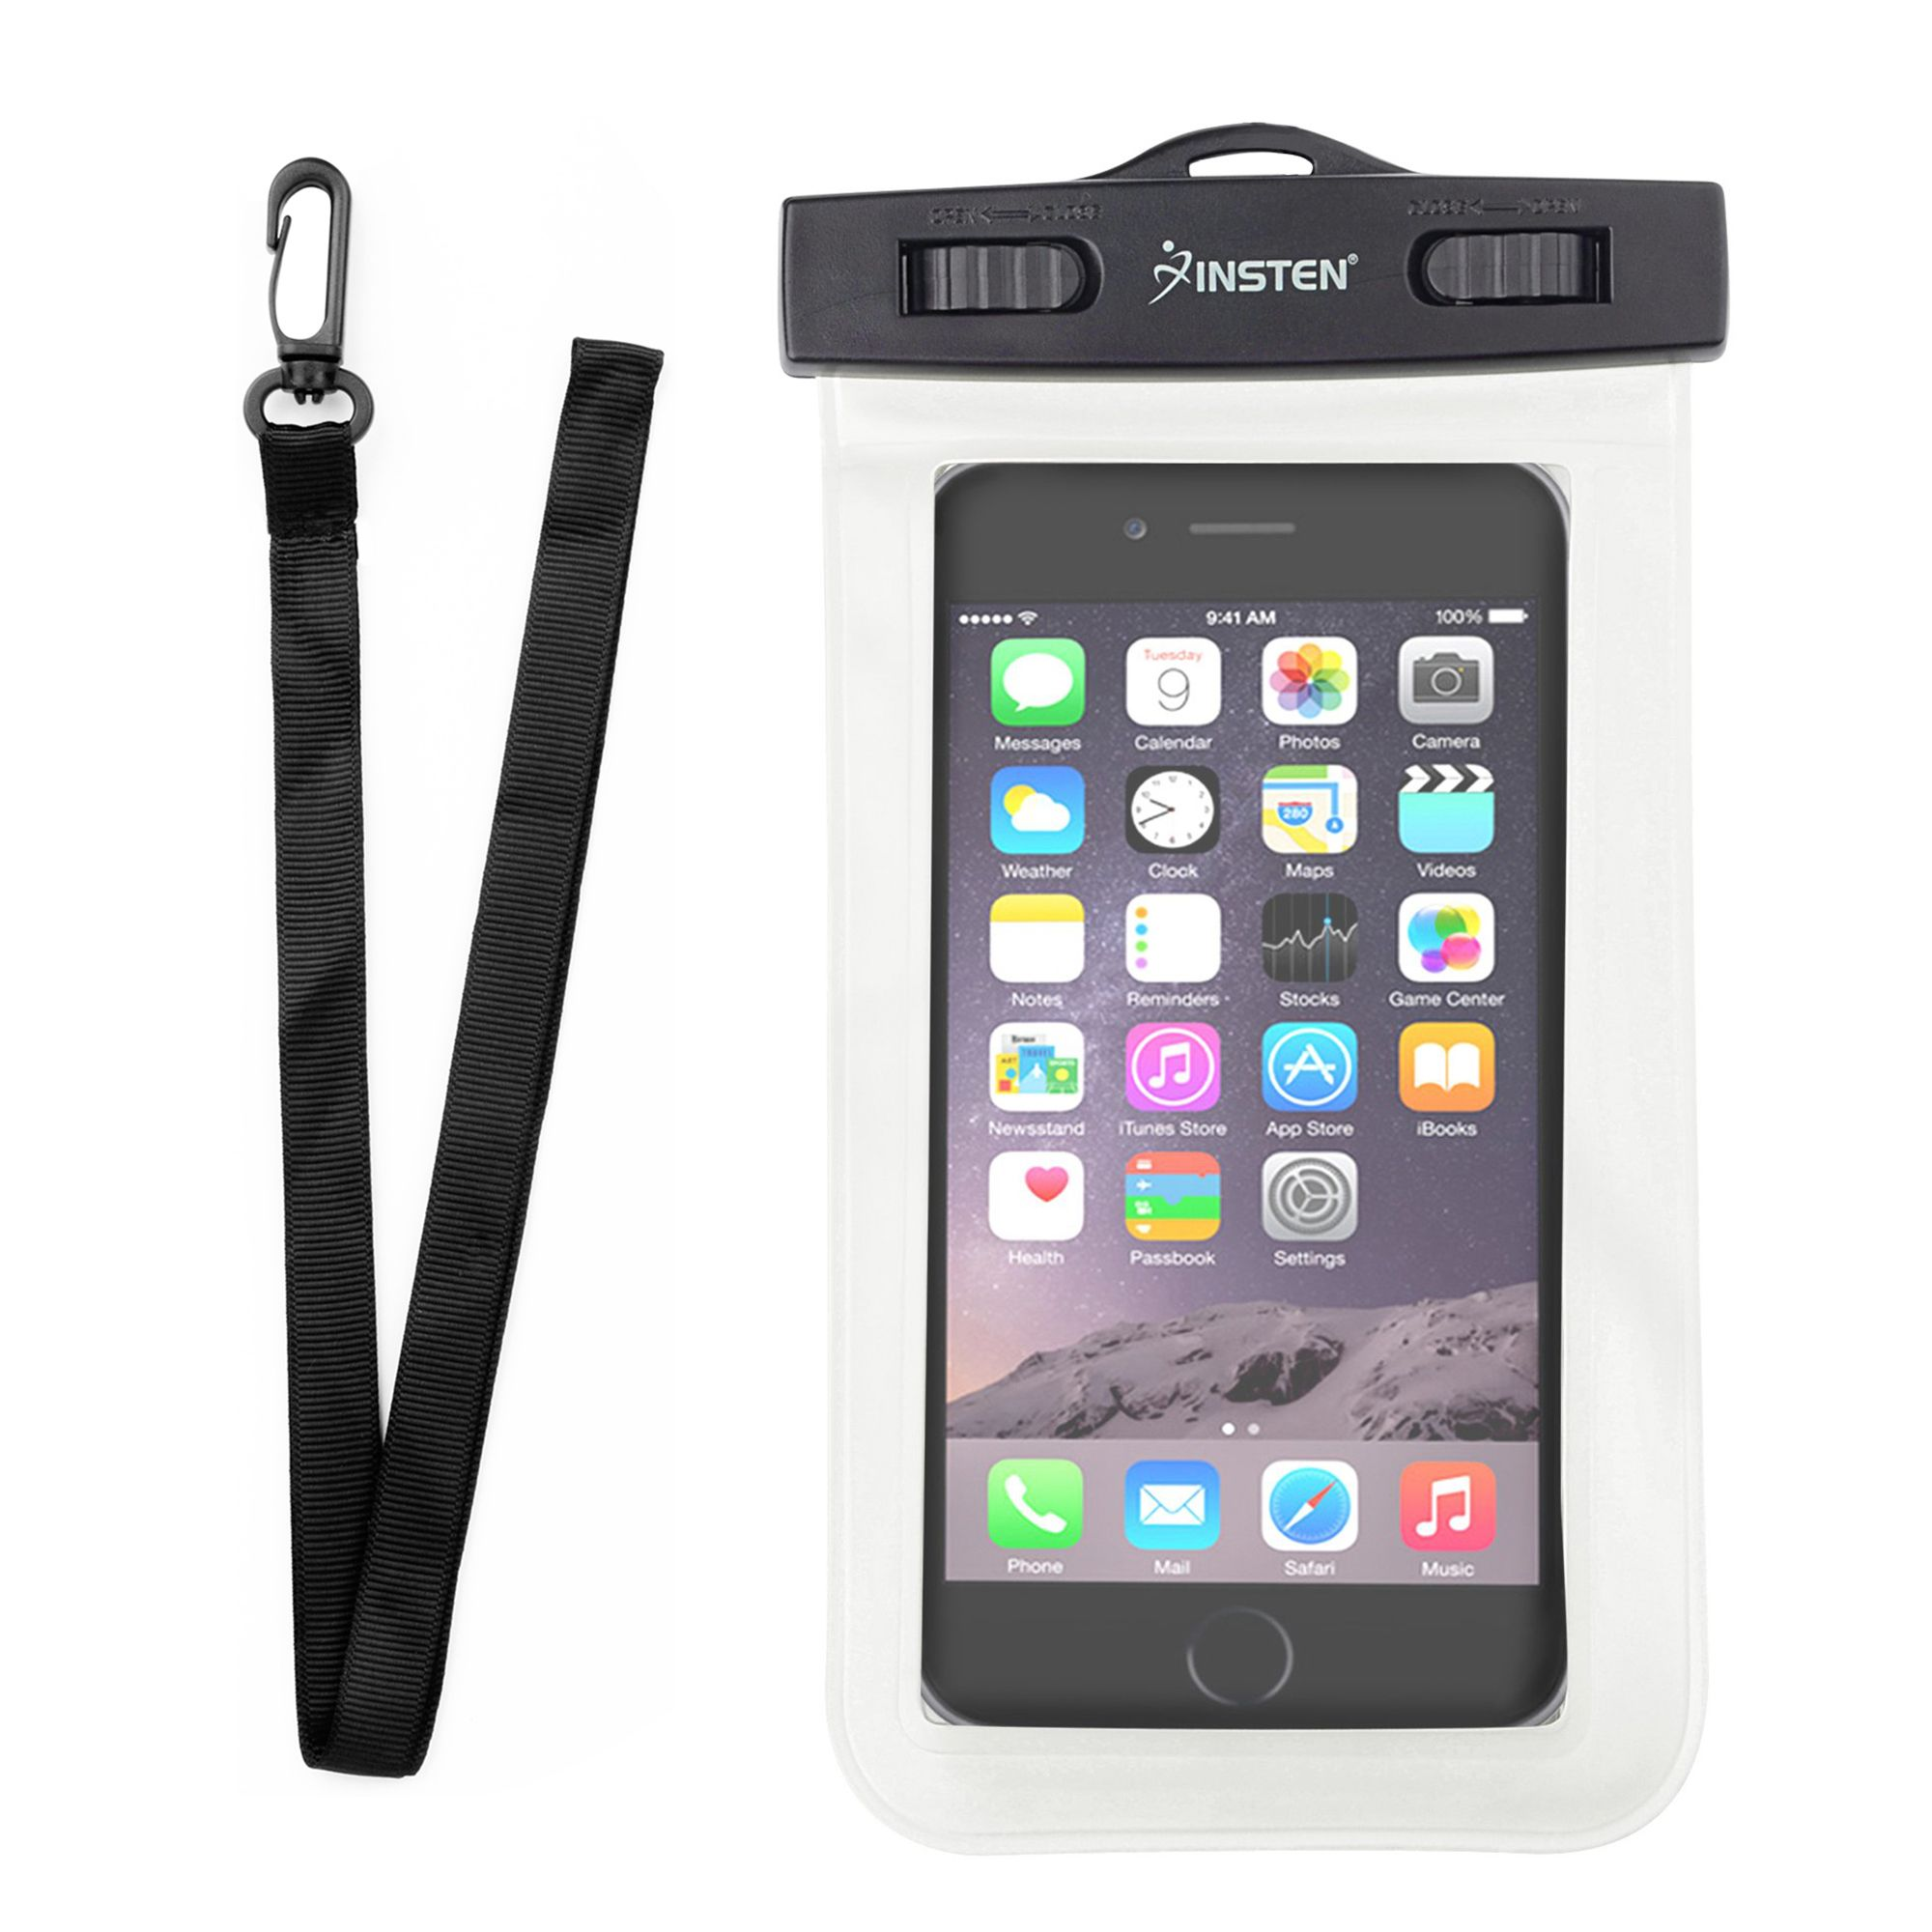 new concept 3238f 83858 Insten Waterproof Phone Case Pouch Bag Carrying Case Pouch with Lanyard &  Armband for iPhone X XS XS Max XR 7 8 Plus 6s Samsung Galaxy S10 S10e S9  S9+ ...